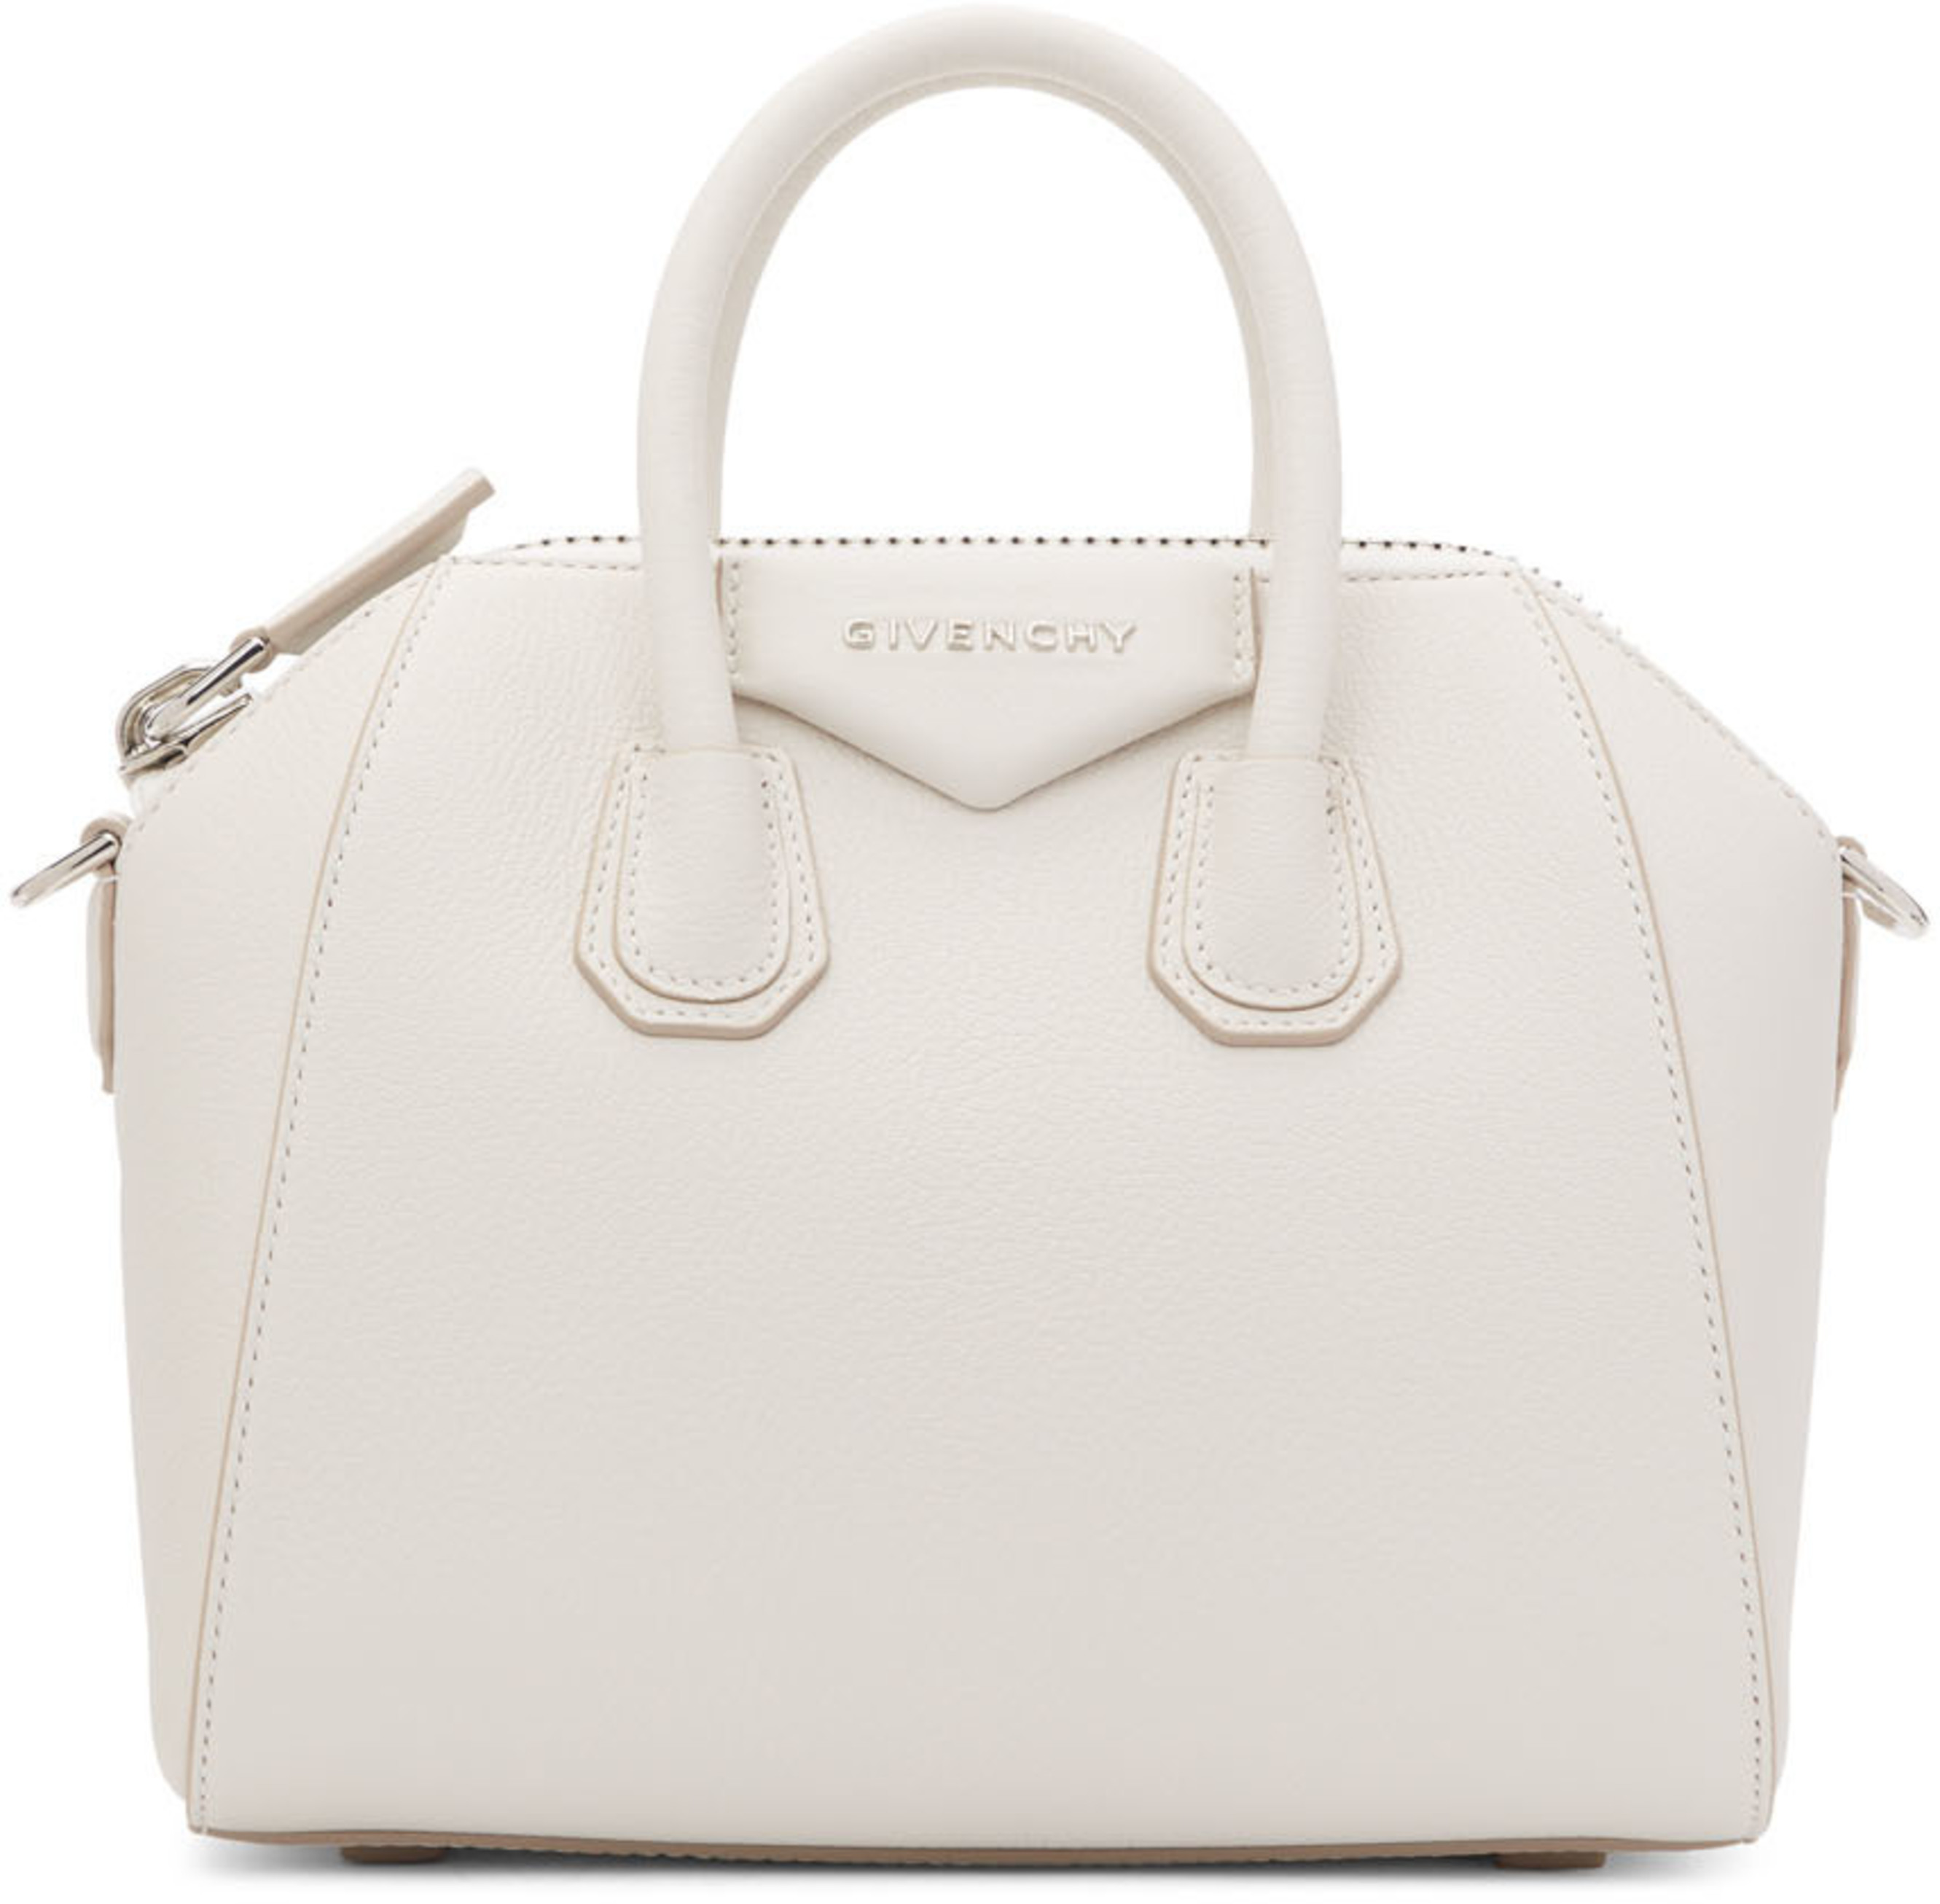 dde14c2f0833 Givenchy bags for Women